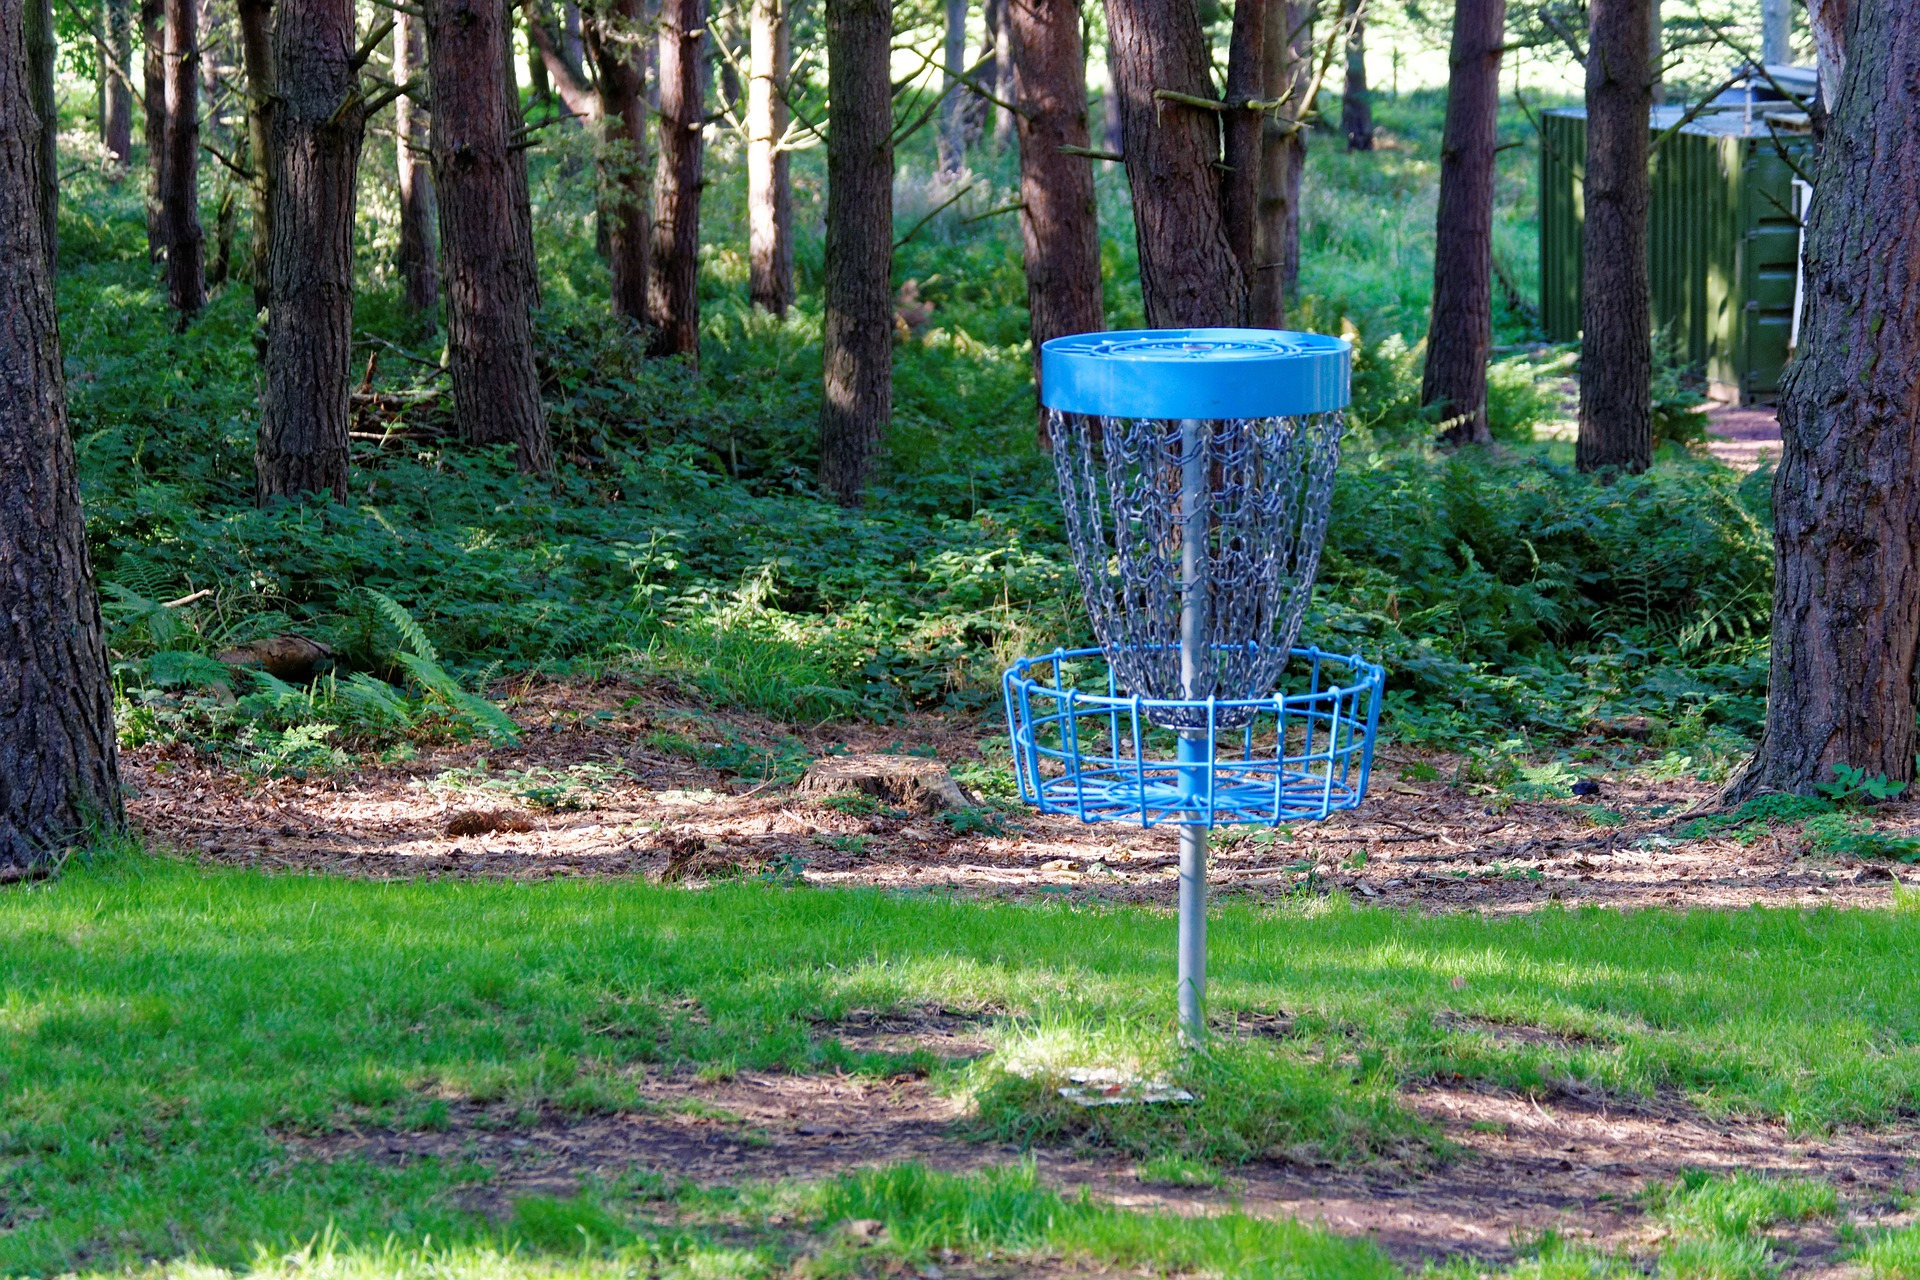 MaxPixel.freegreatpicture.com-Forest-Disc-Golf-Netting-Frisbee-Game-Frisbee-970865.jpg